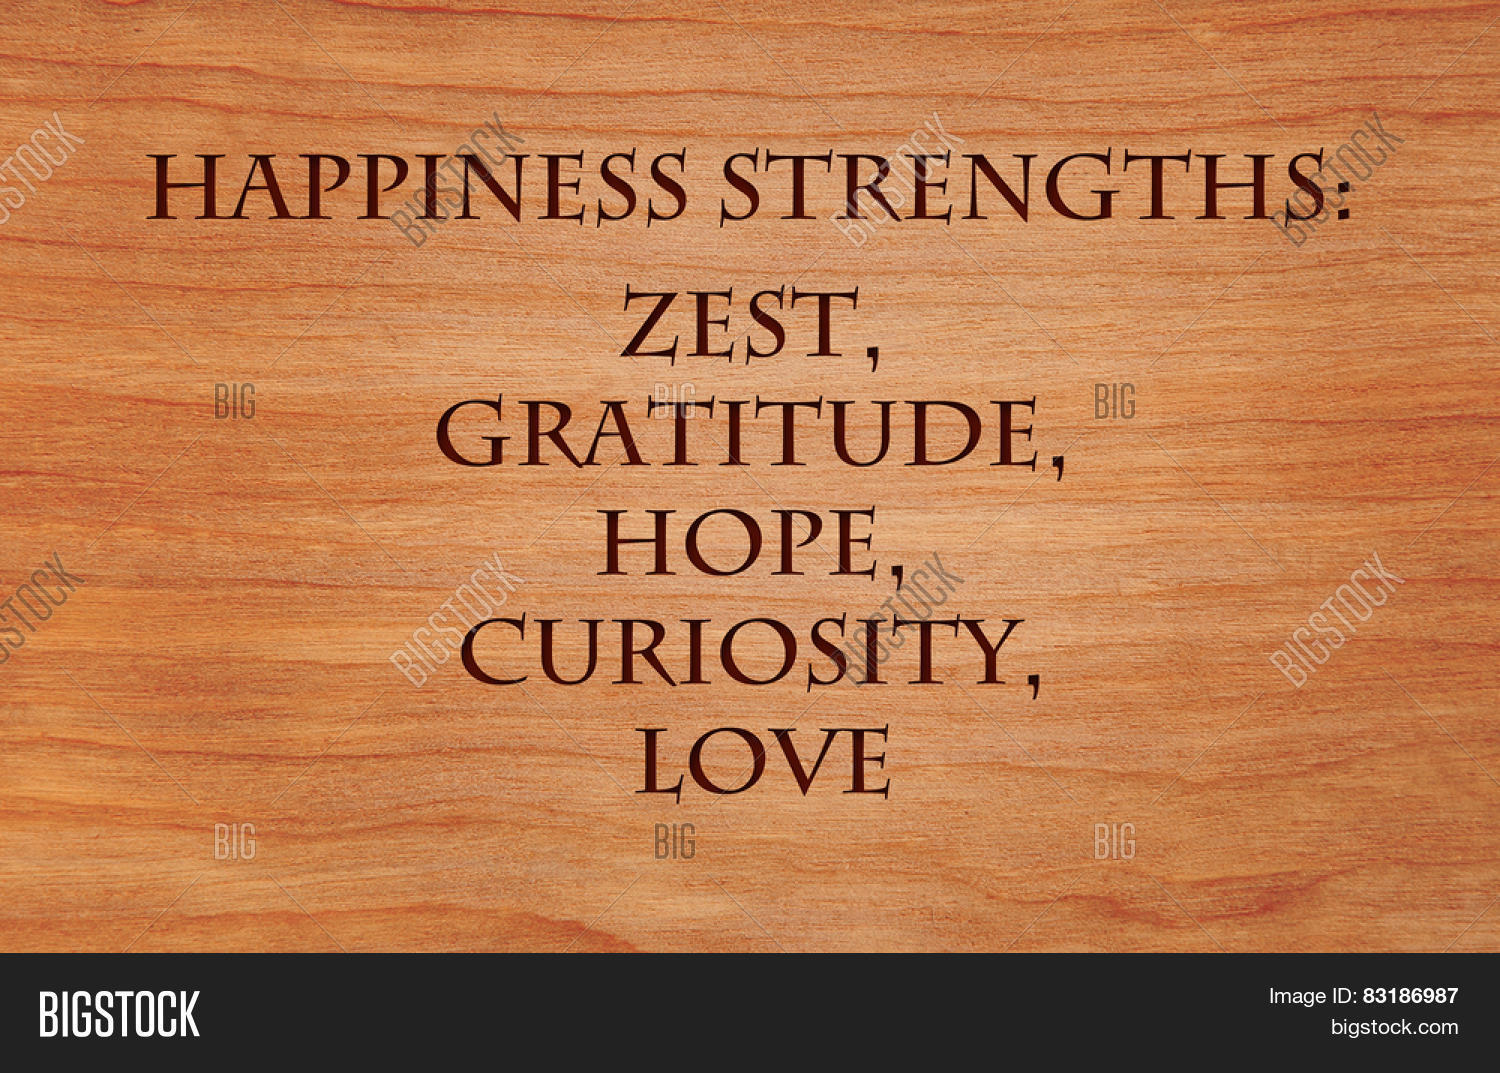 happiness strengths zest gratitude hope curiosity love happiness strengths zest gratitude hope curiosity love list of character